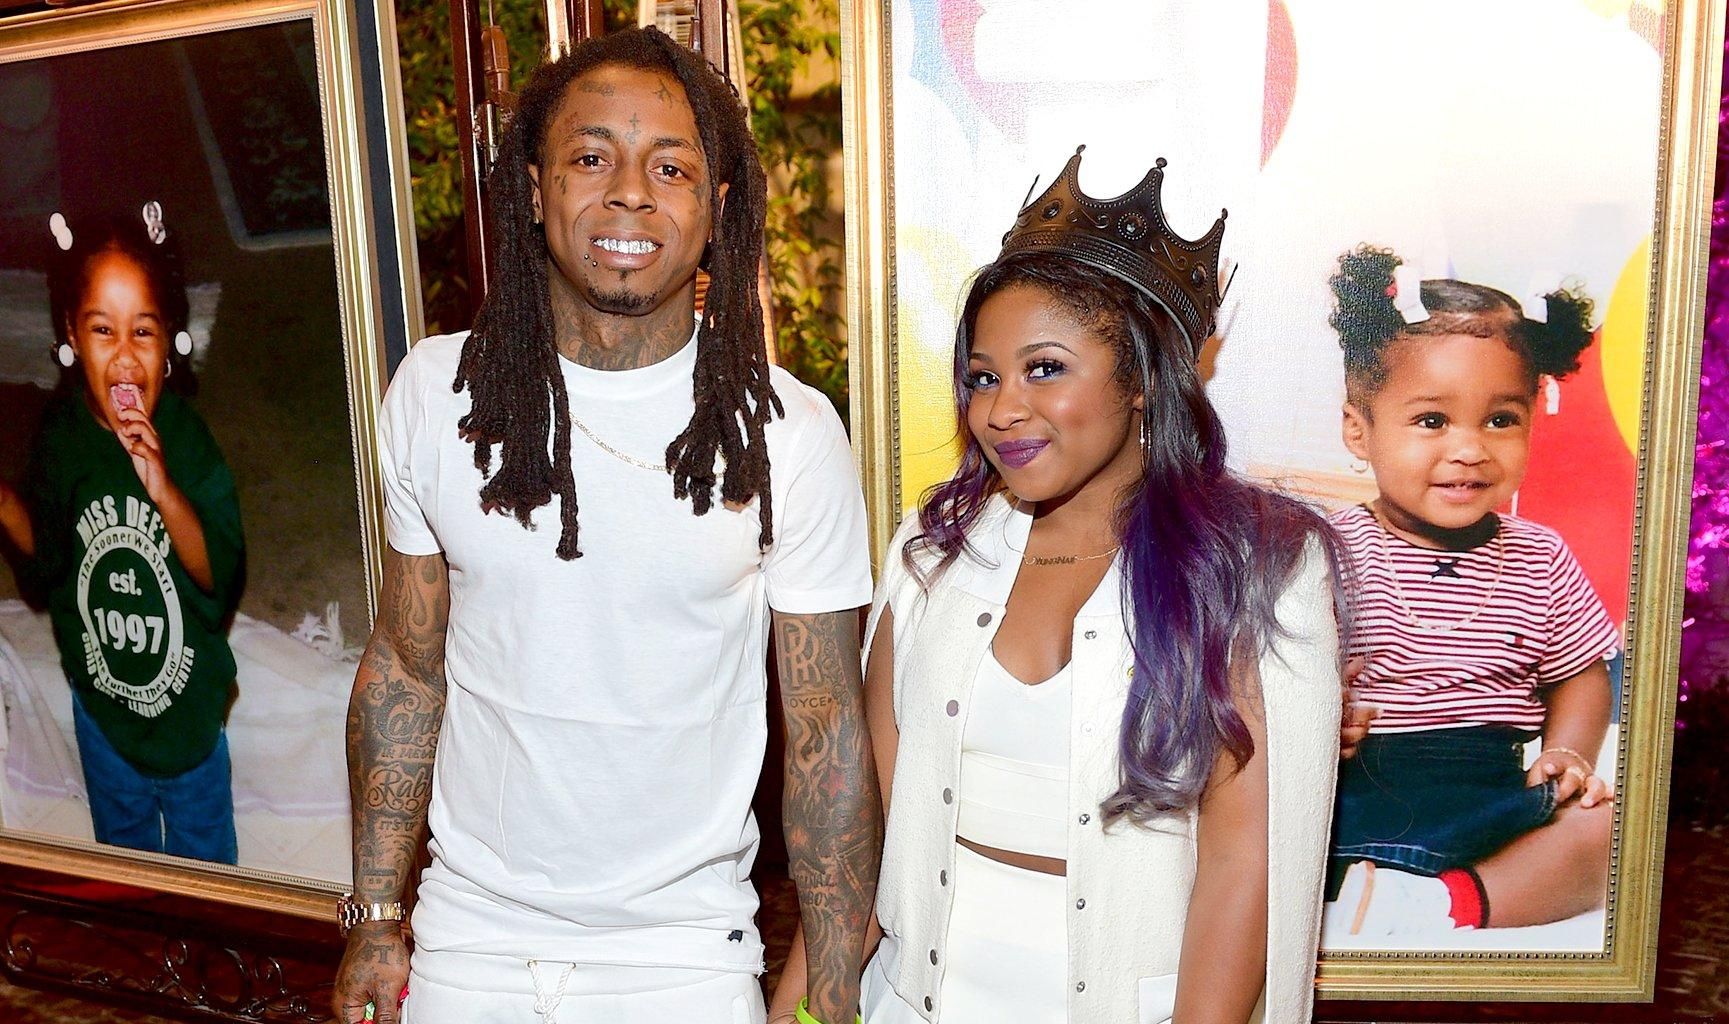 Reginae Carter Perfectly Imitates Her Dad, Lil Wayne And Shares His Opinion On The Result